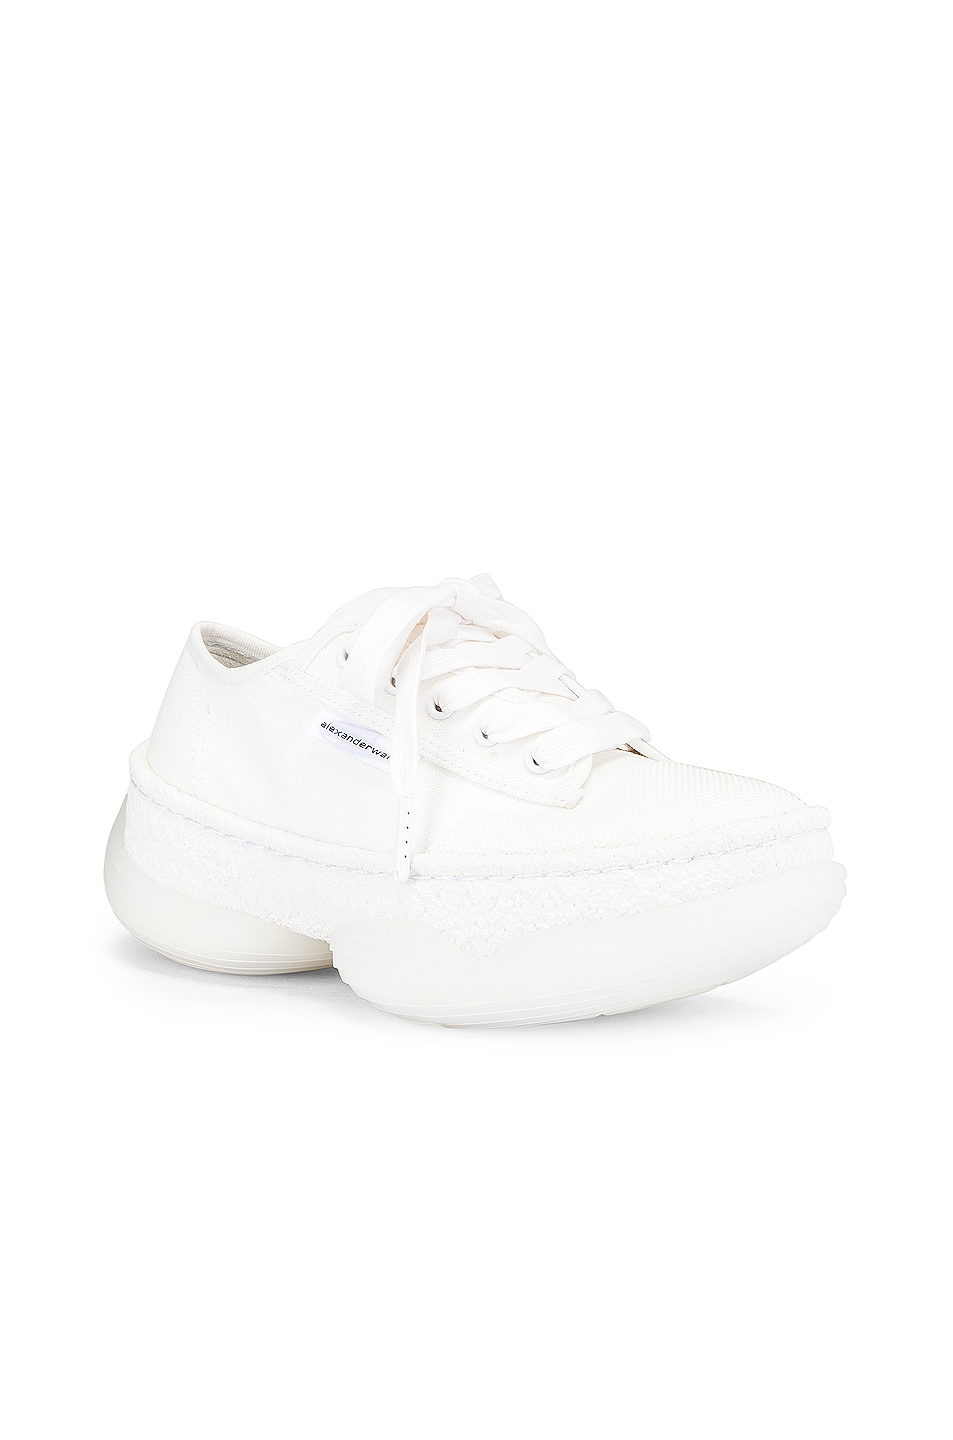 Image 2 of Alexander Wang A1 Low Top Sneaker in White